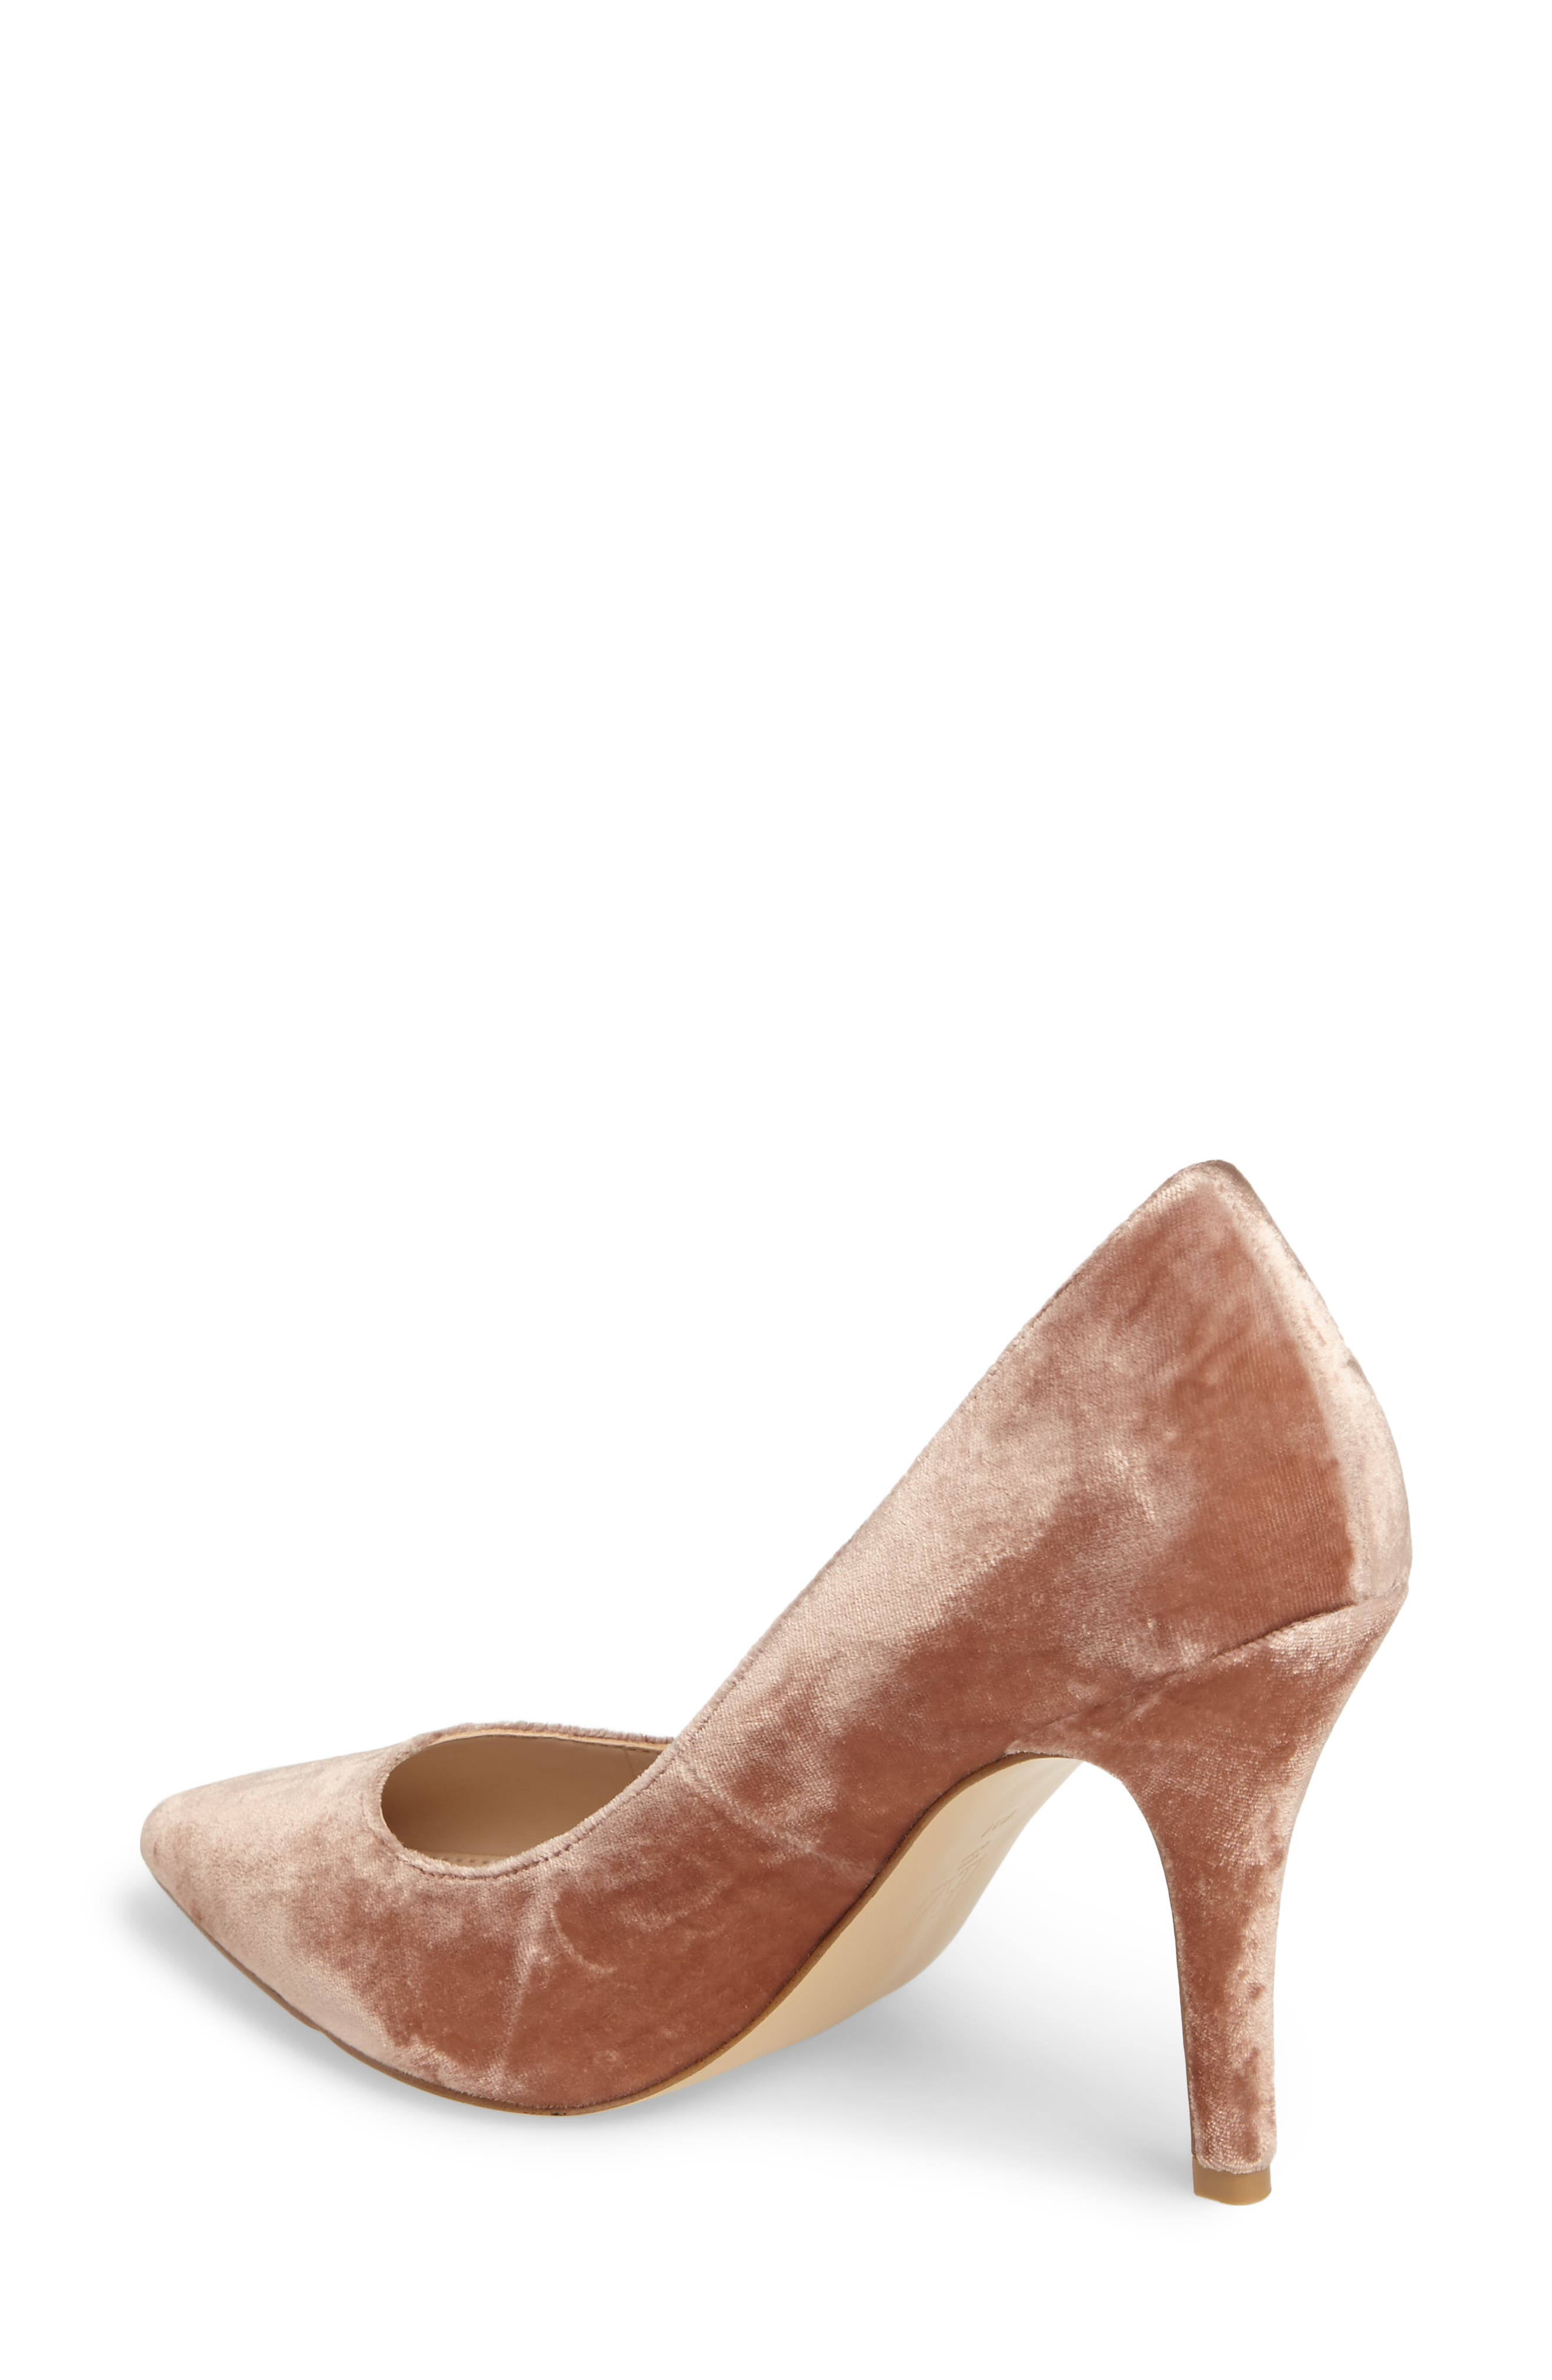 Vally2 Pointy Toe Pump,                             Alternate thumbnail 2, color,                             650